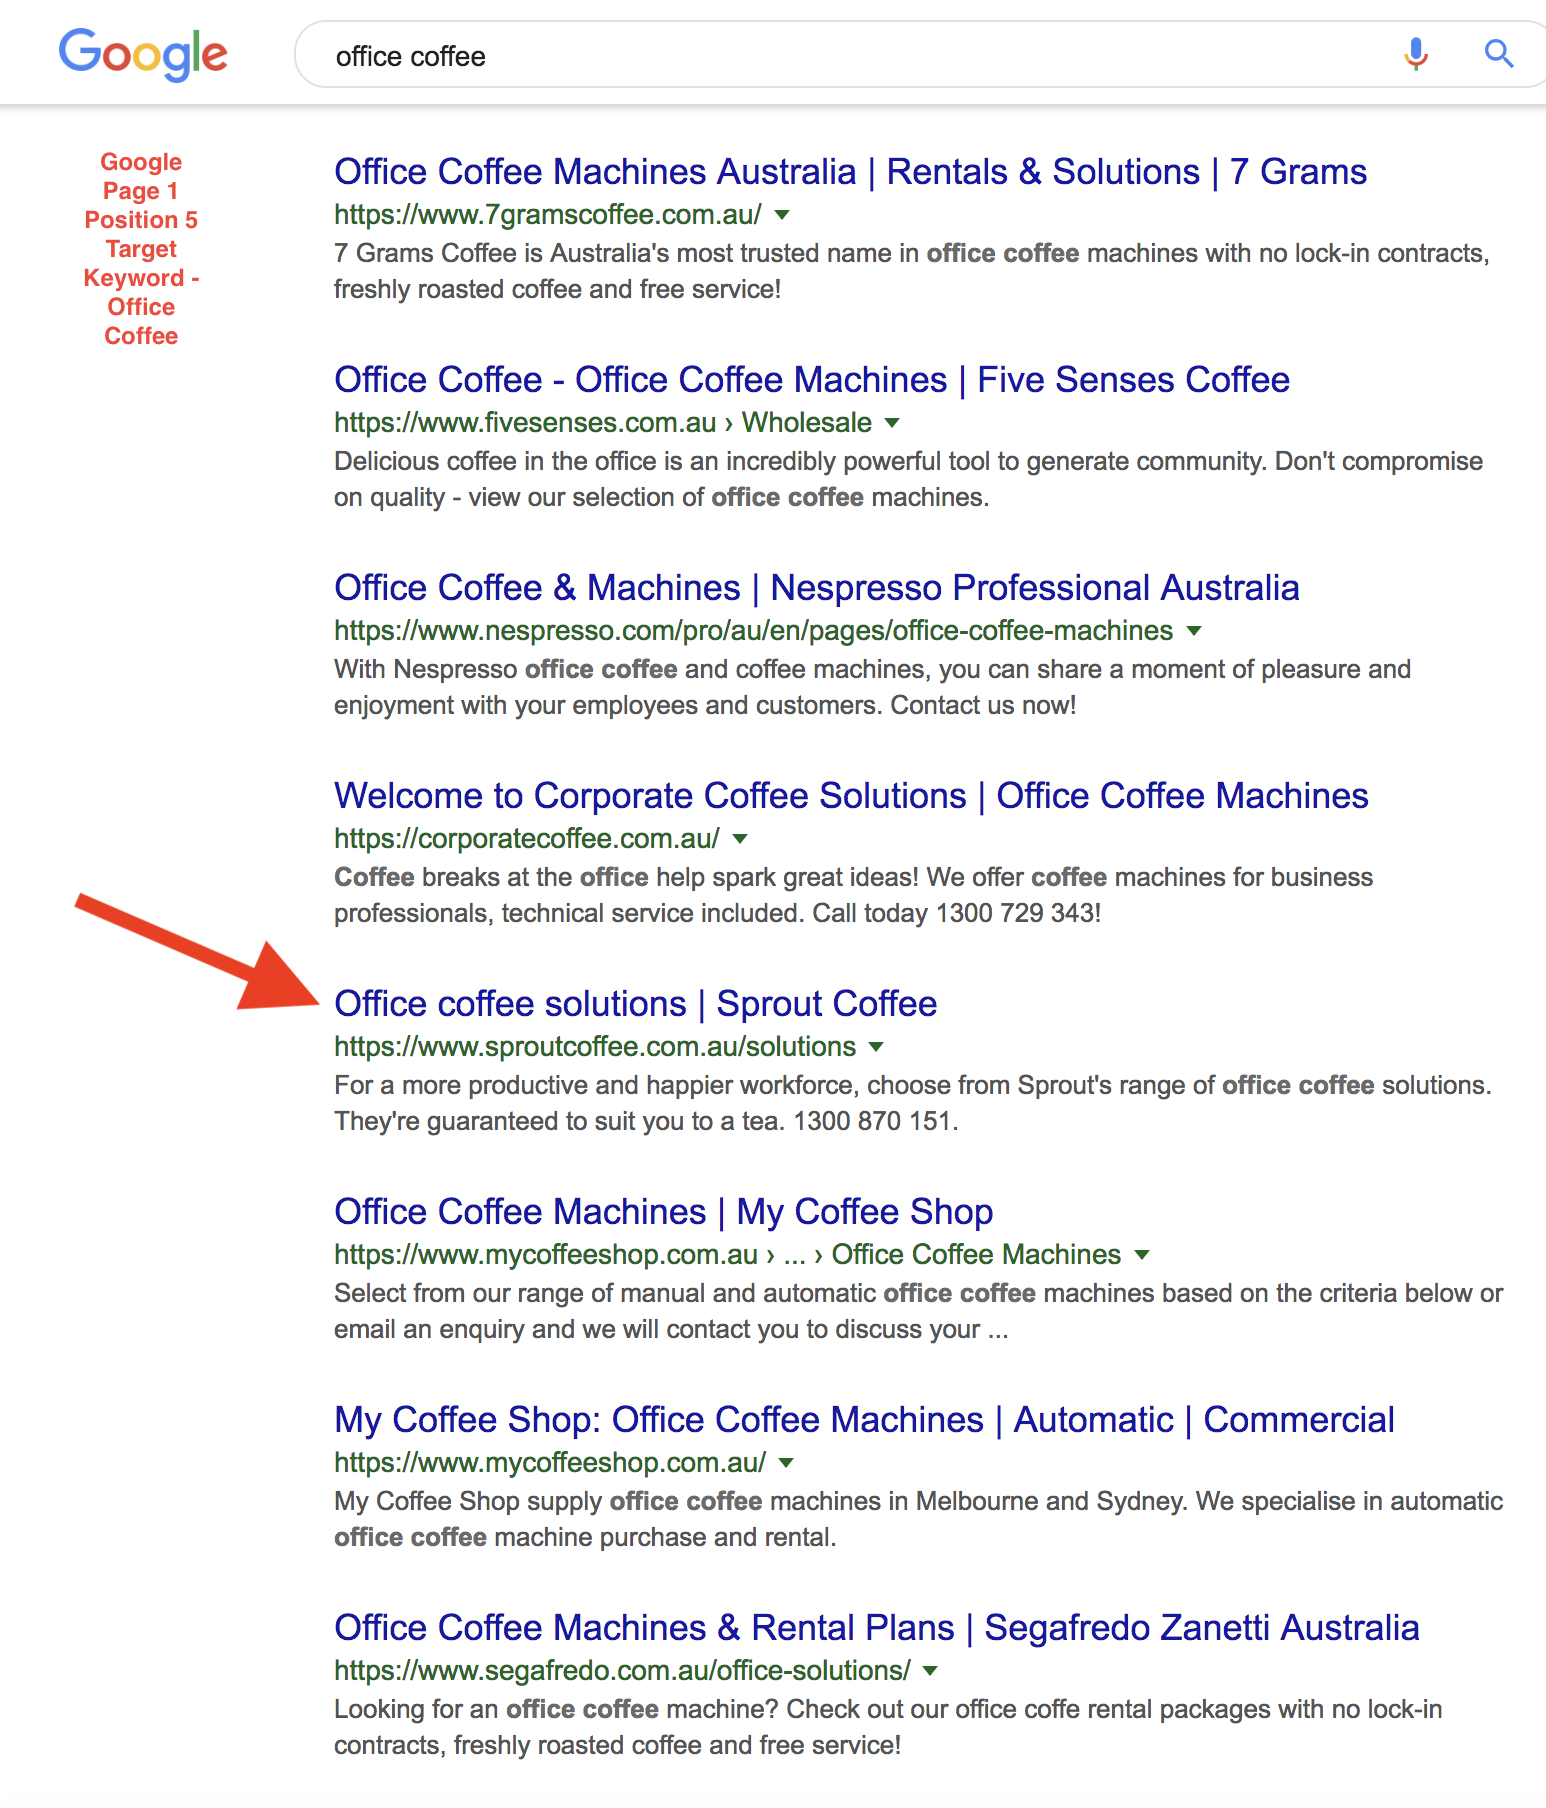 Sprout Coffee Google page 1 2019-02-27 pm